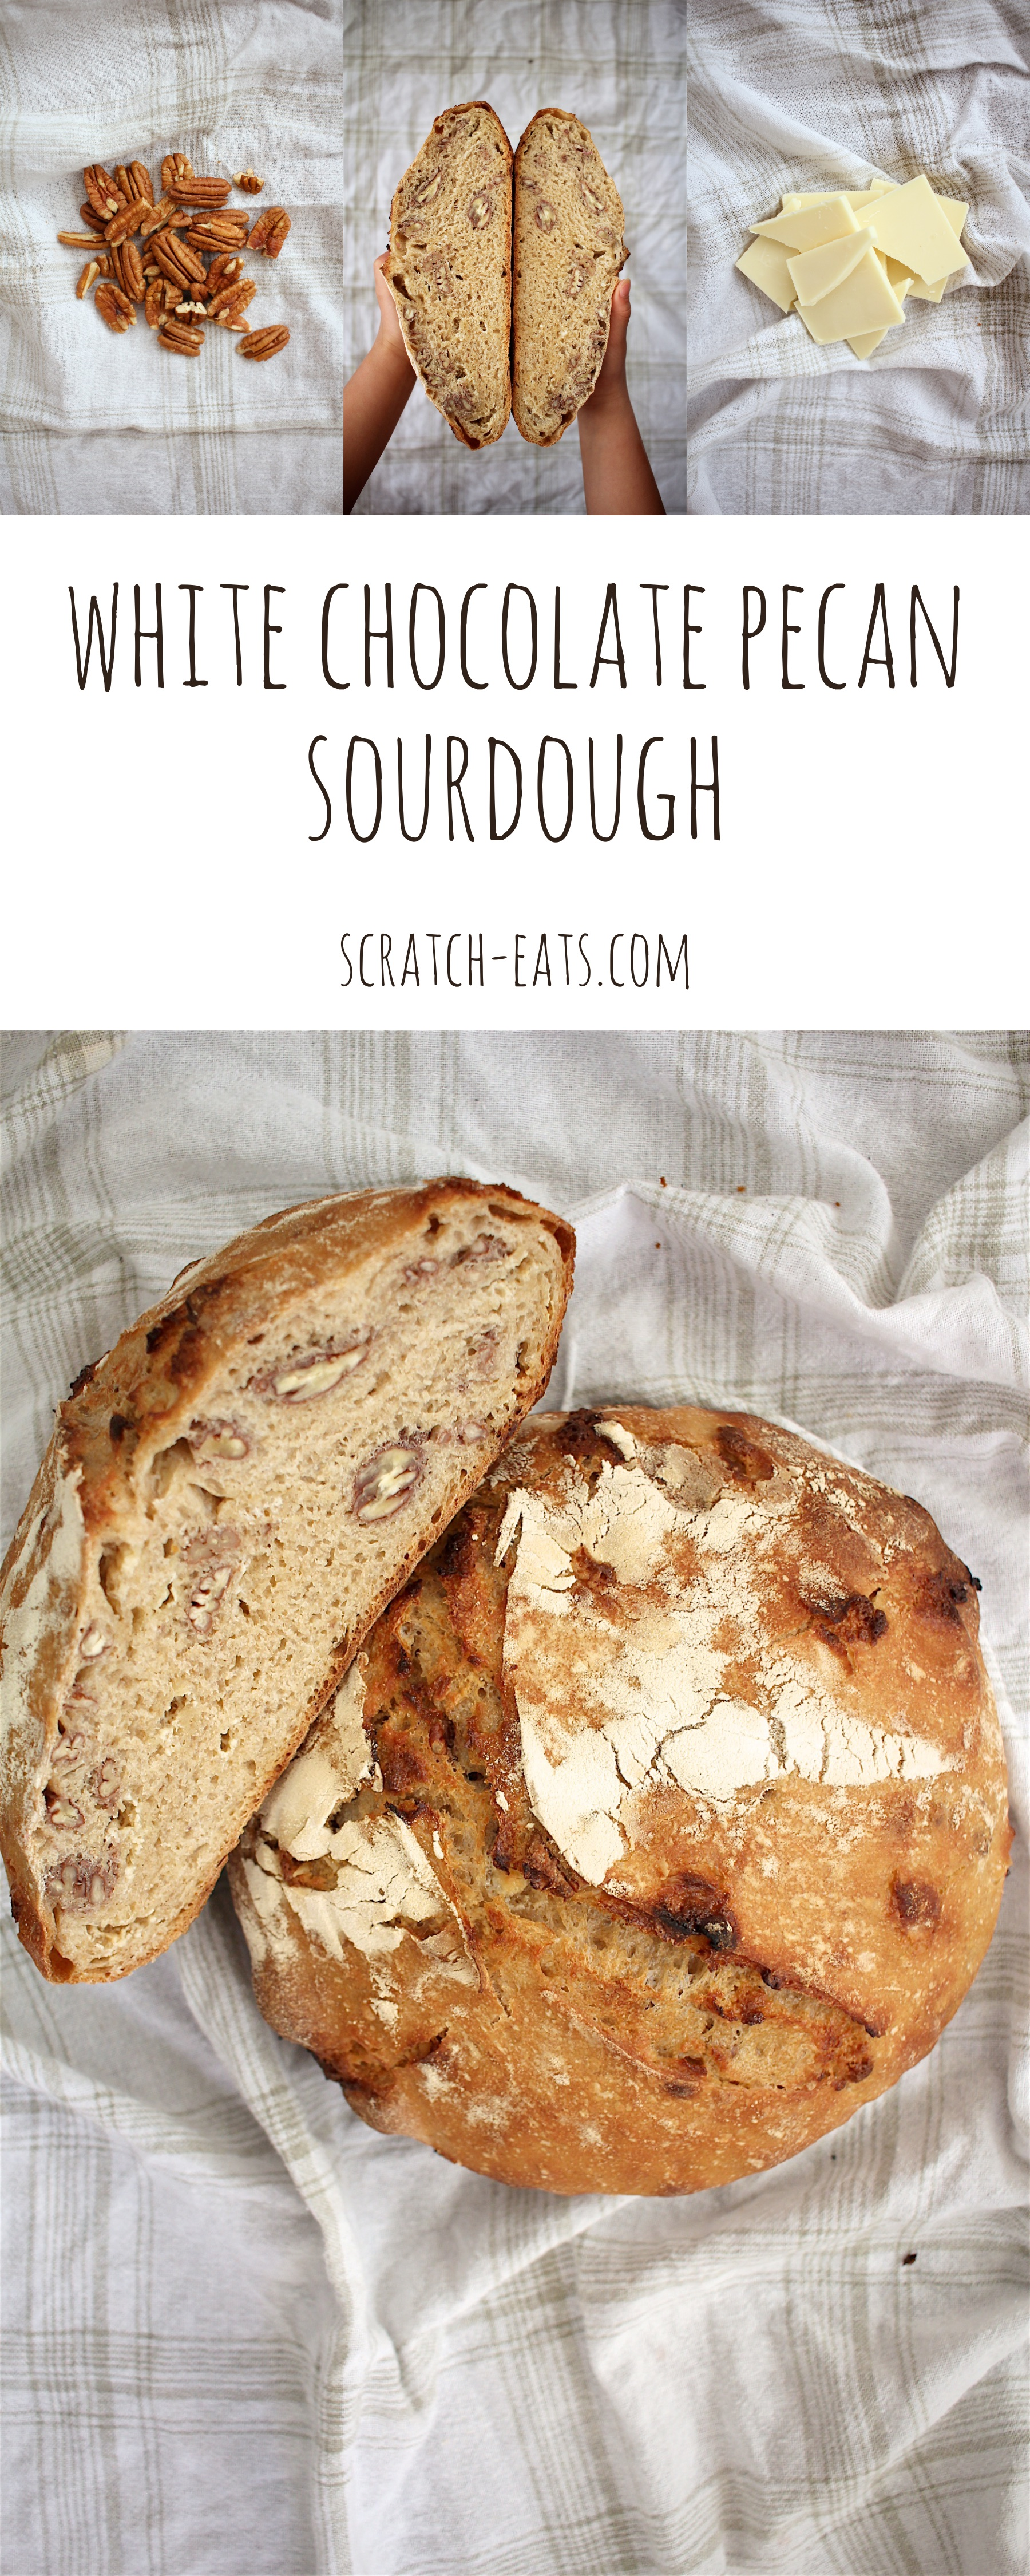 White Chocolate Pecan Sourdough